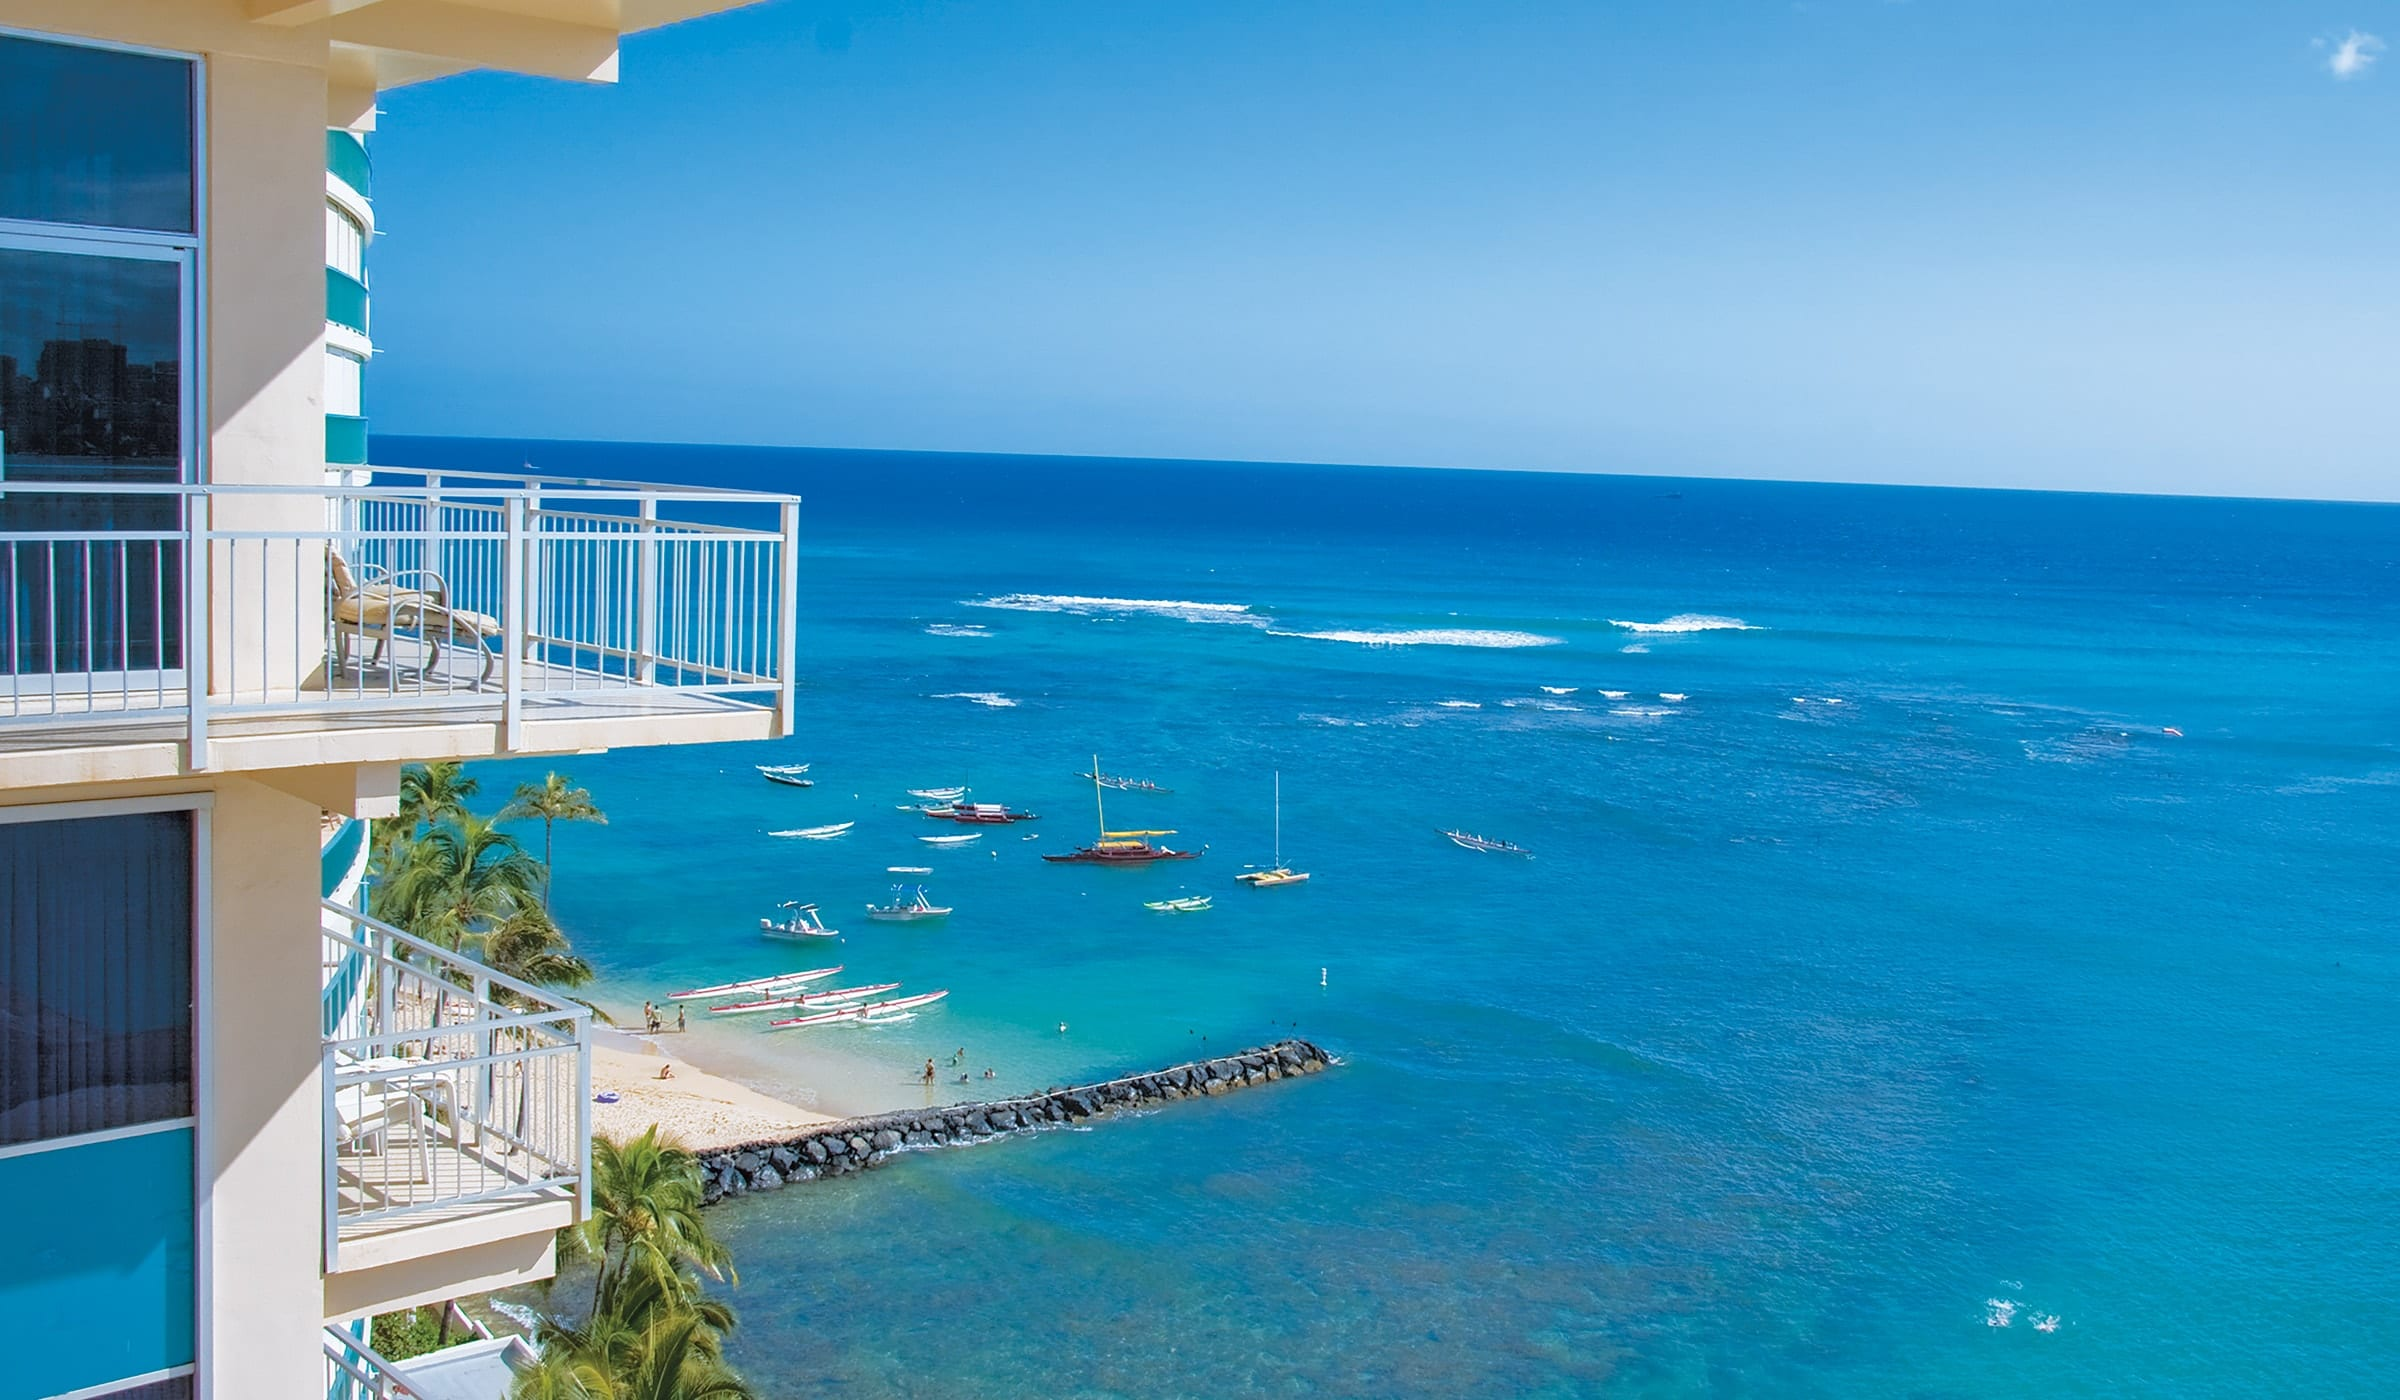 SEASONAL OFFERS FROM NEW OTANI HOTELS